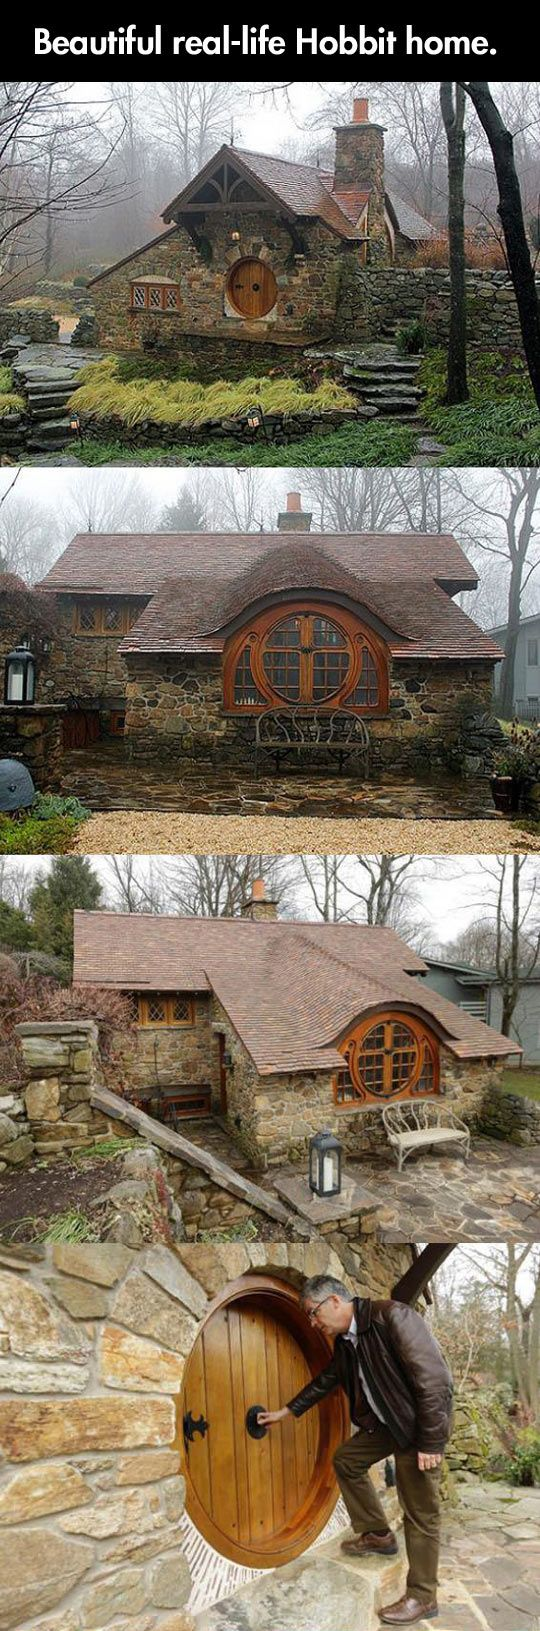 Hobbit Home Hobbit And Real Life On Pinterest